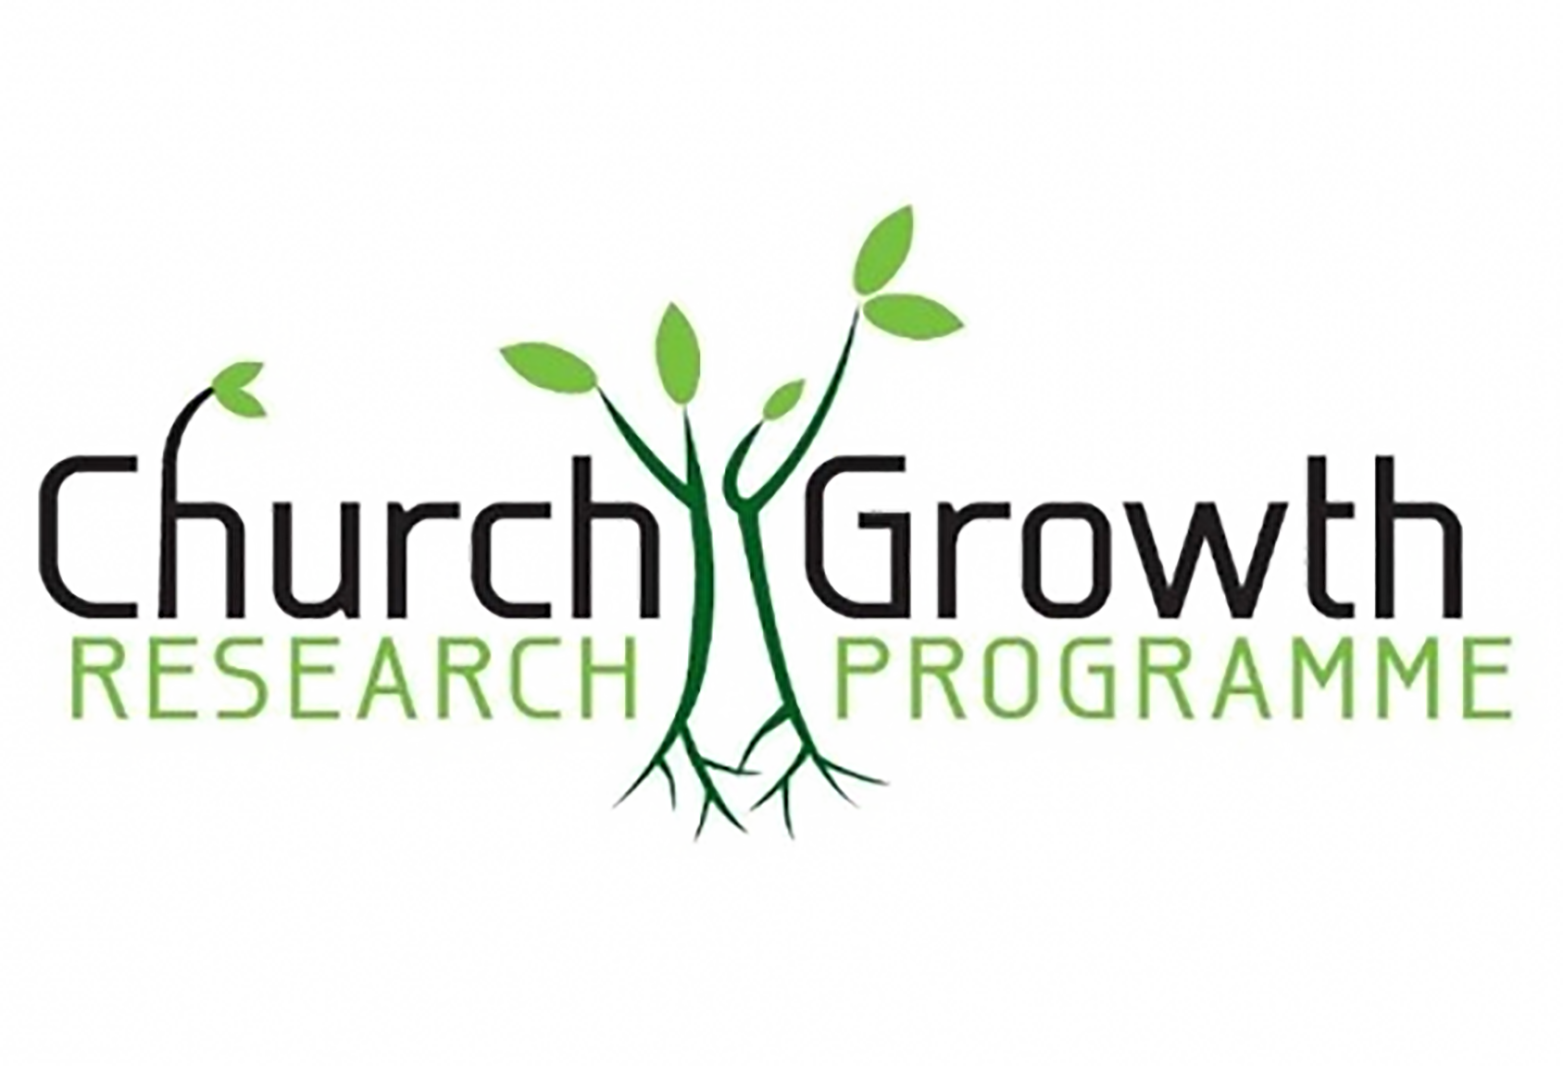 Church Growth Research Programme logo